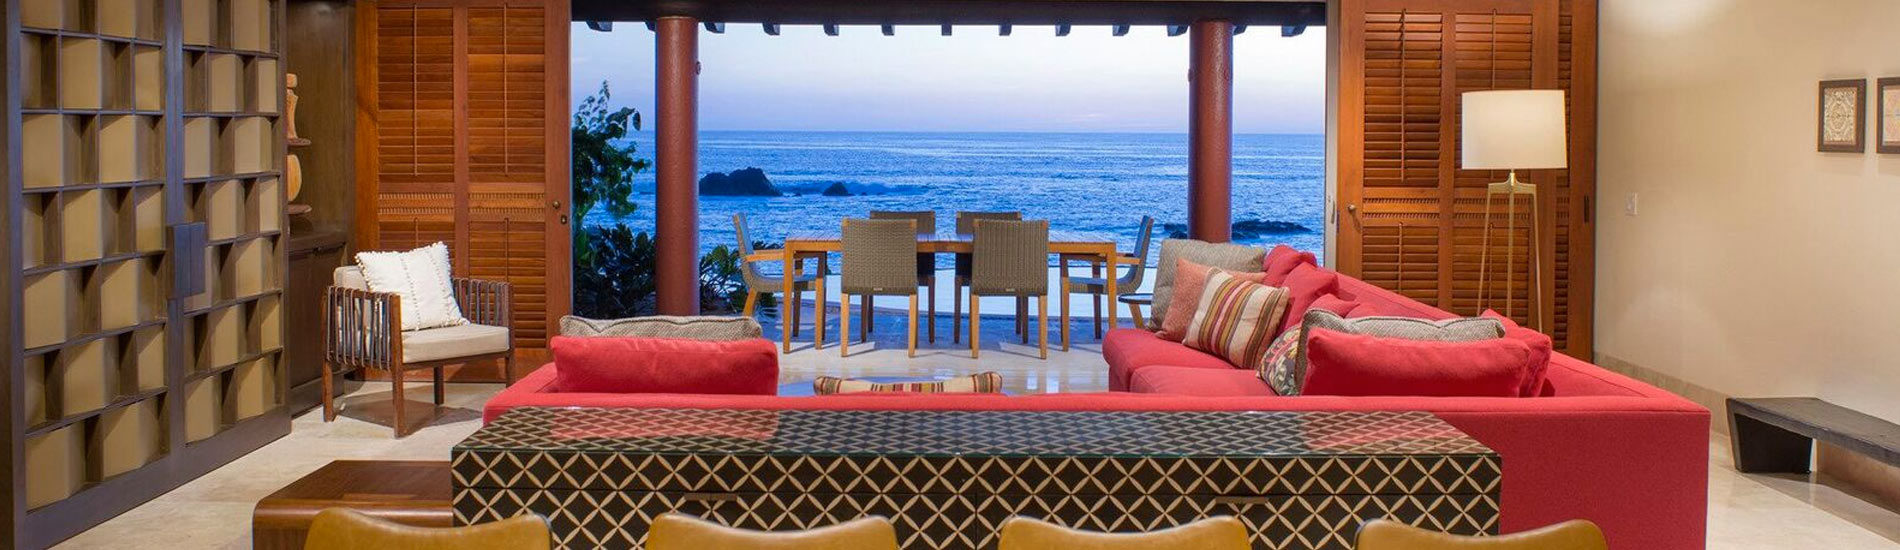 sol villa at four seasons punta mita villas by journey mexico